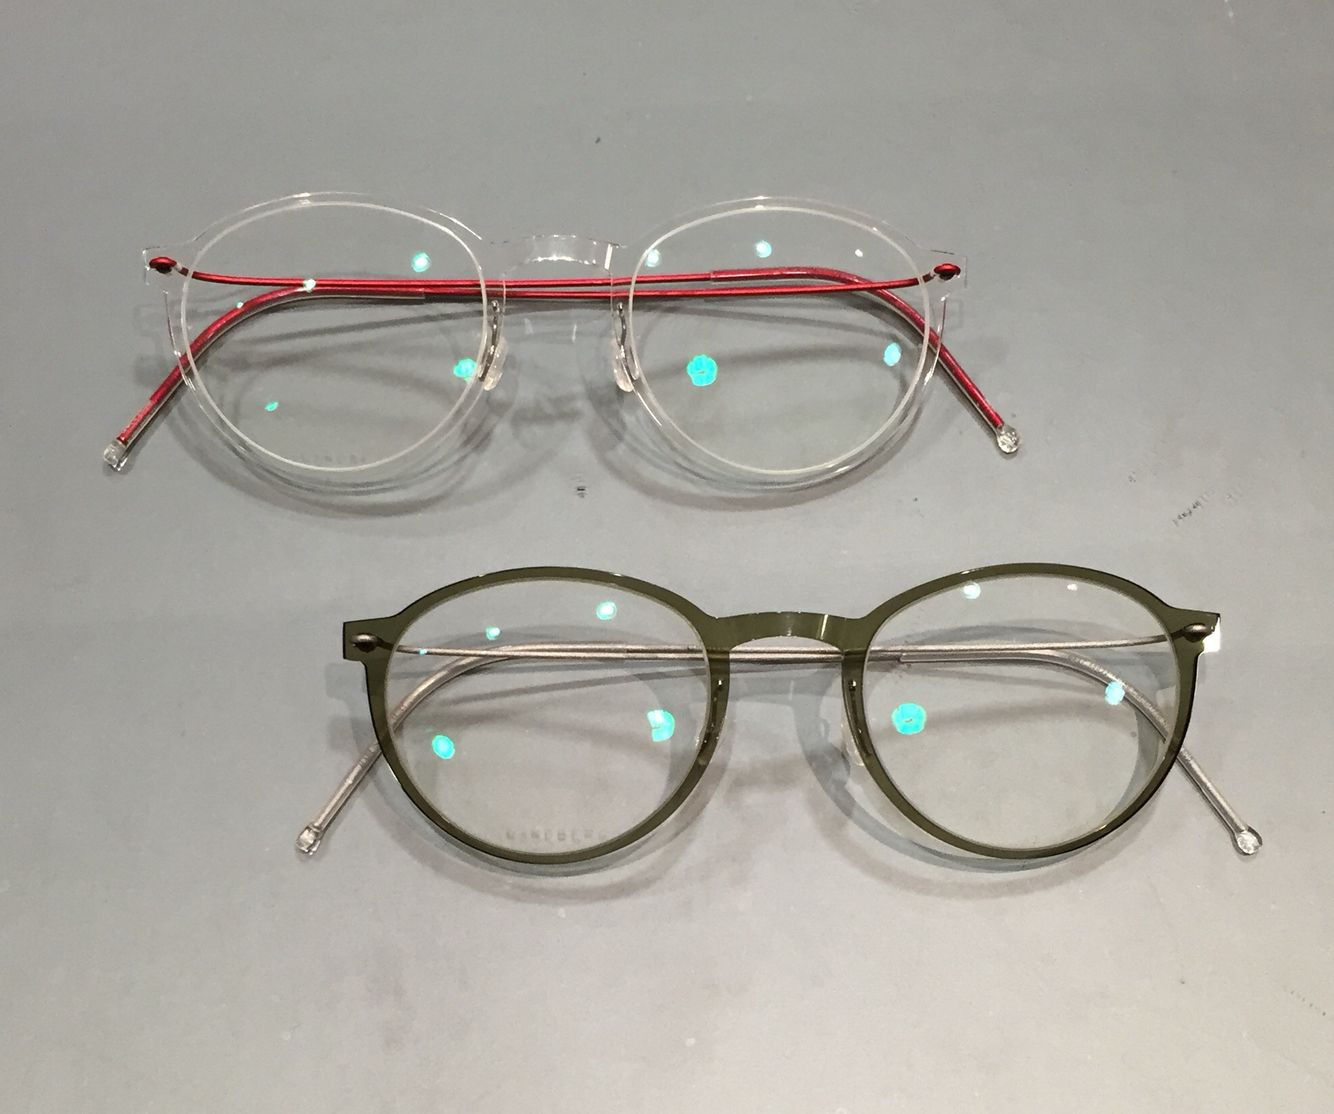 8574a8ed2c New frames from Lindberg. Love the colors in their N.O.W. Collection.   fashion  eyewear  eyeglasses  Lindberg